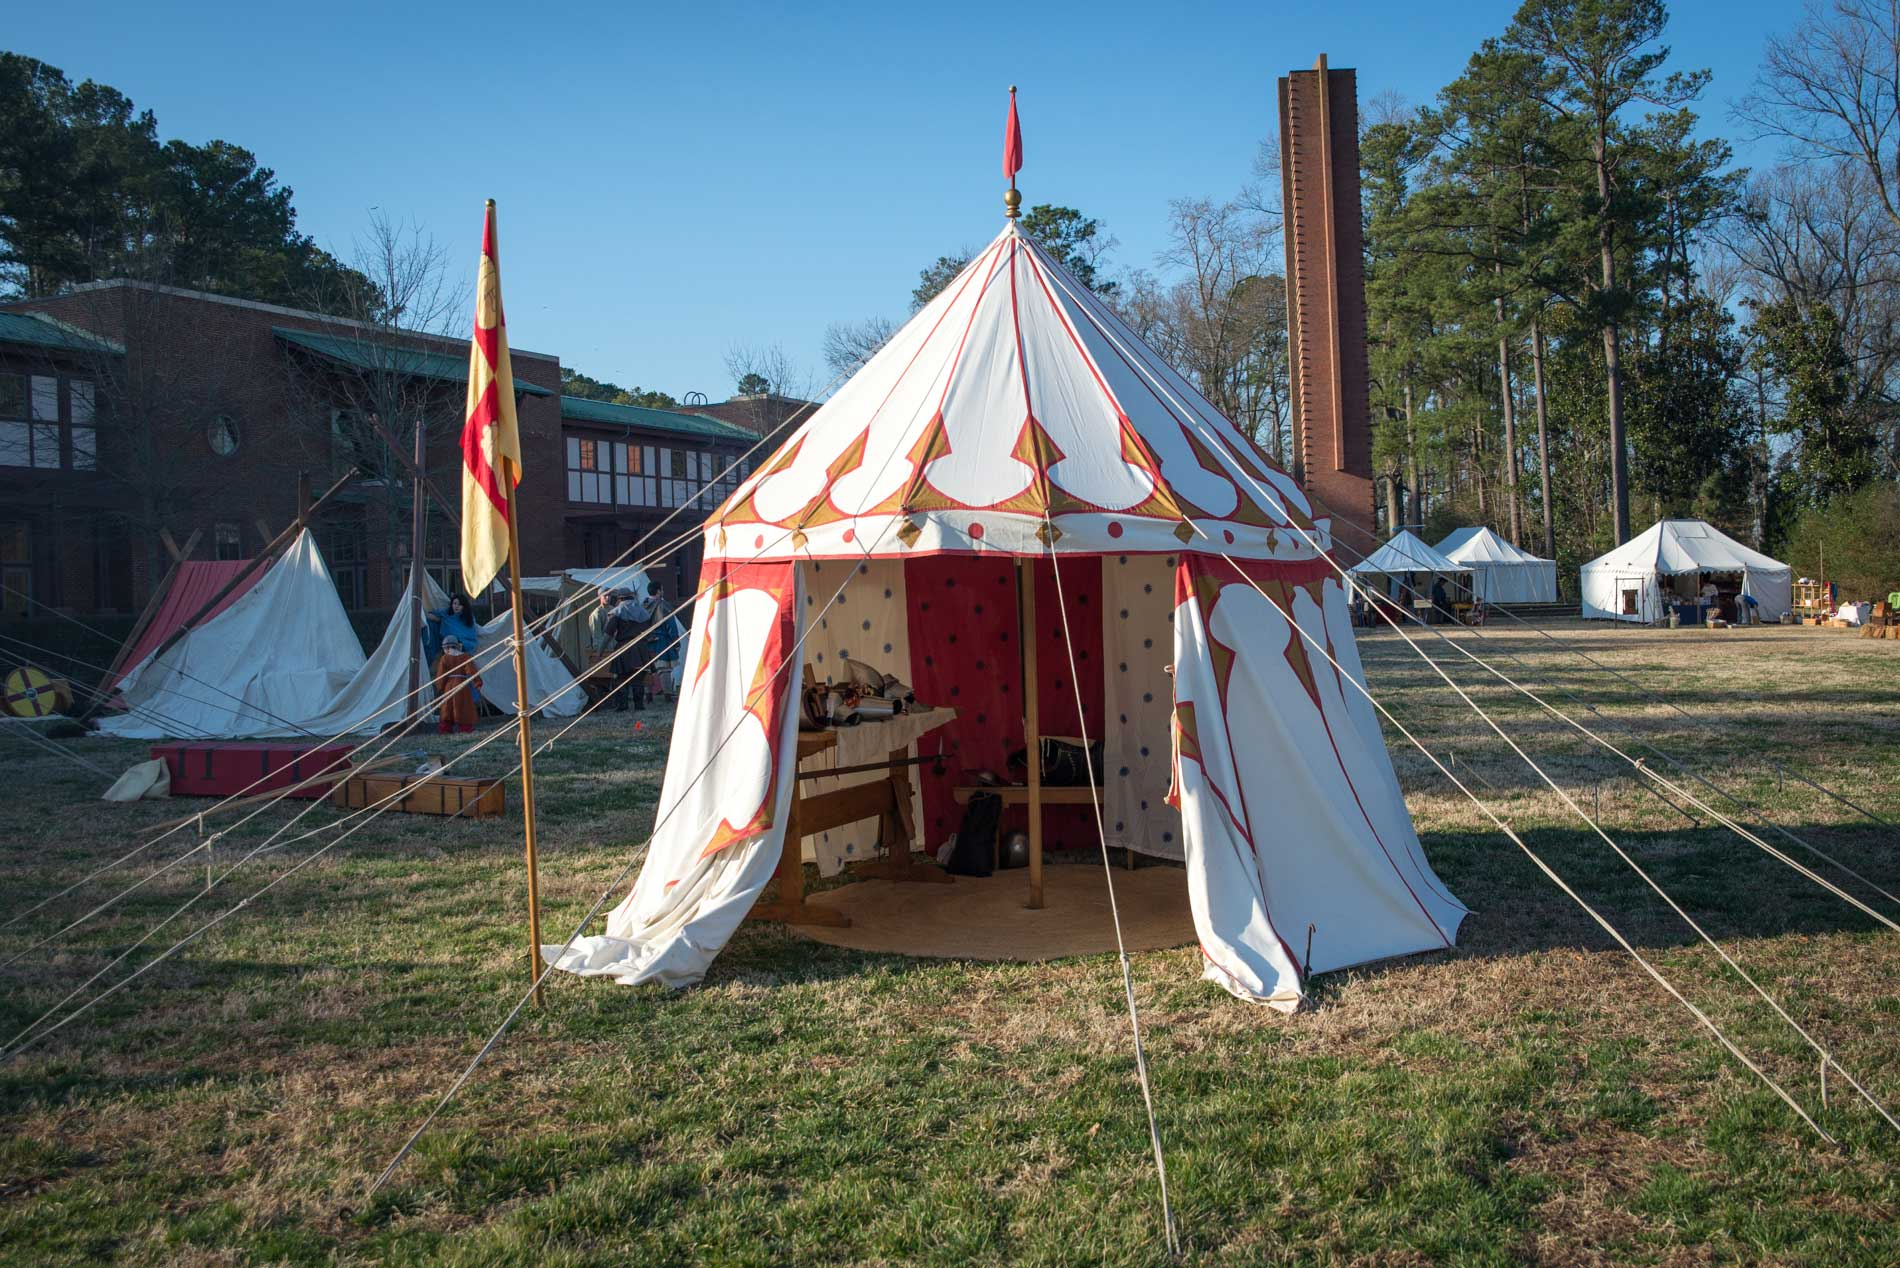 Friendu0027s arming pavilion with taut line hitched guy lines. & Easy Medieval Tent Improvement Tip u2013 Knyght Errant